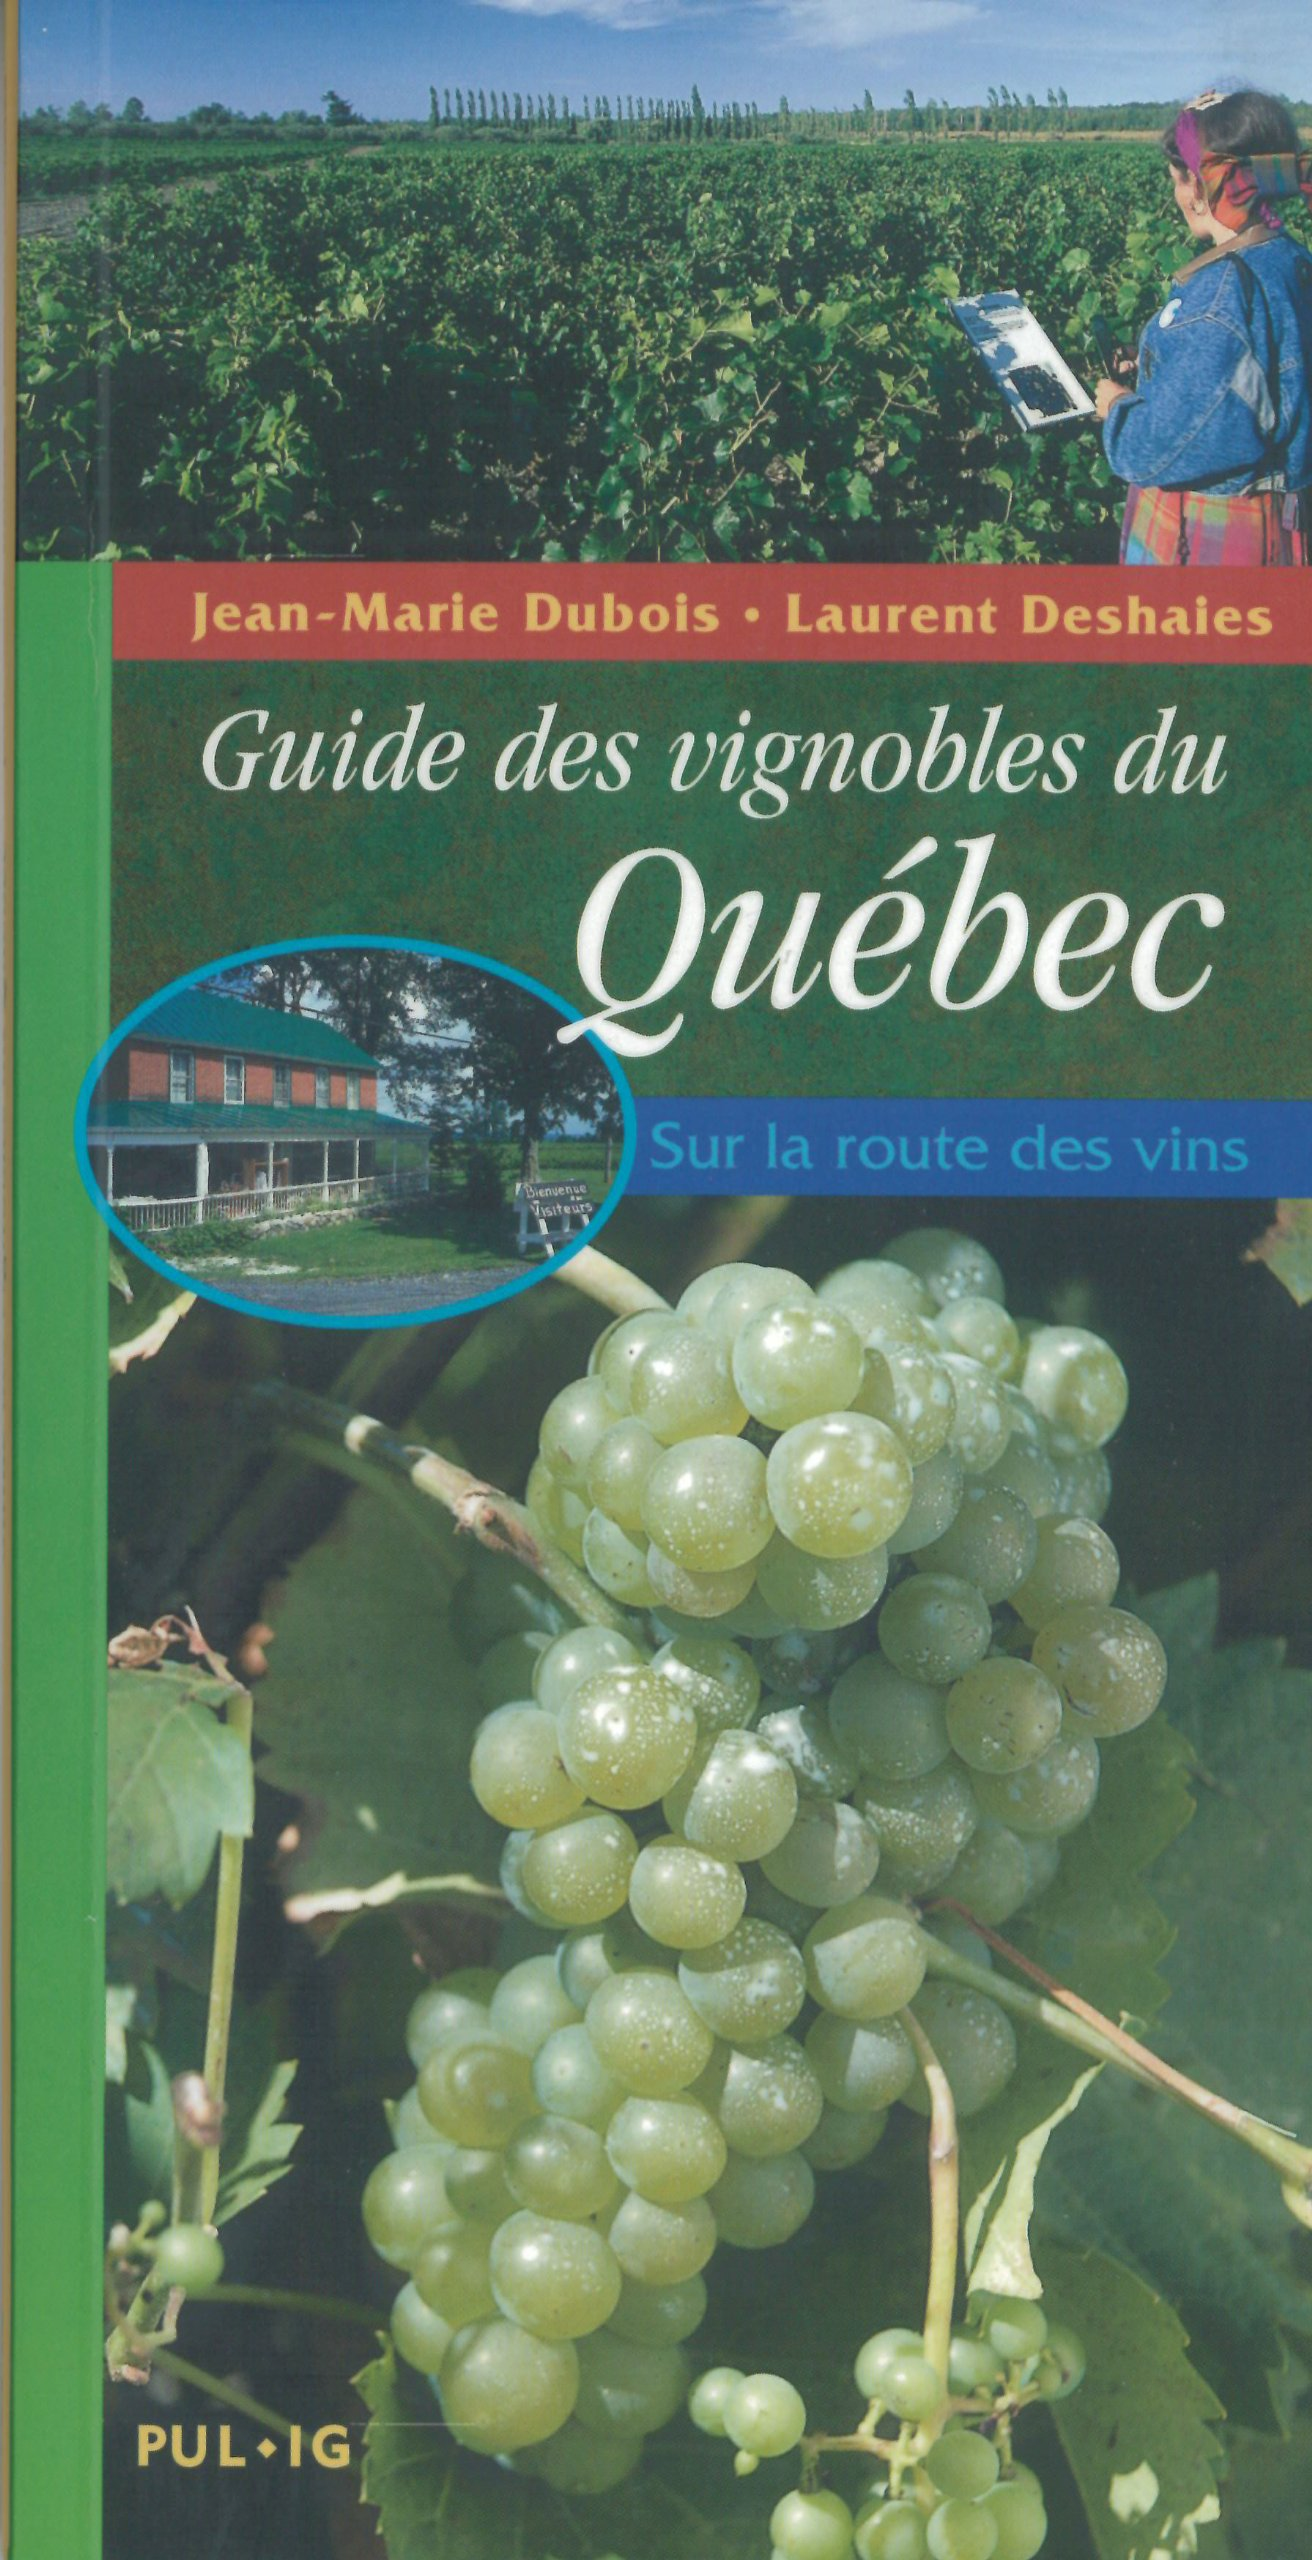 GUIDE DE LA ROUTE QUEBEC PDF DOWNLOAD